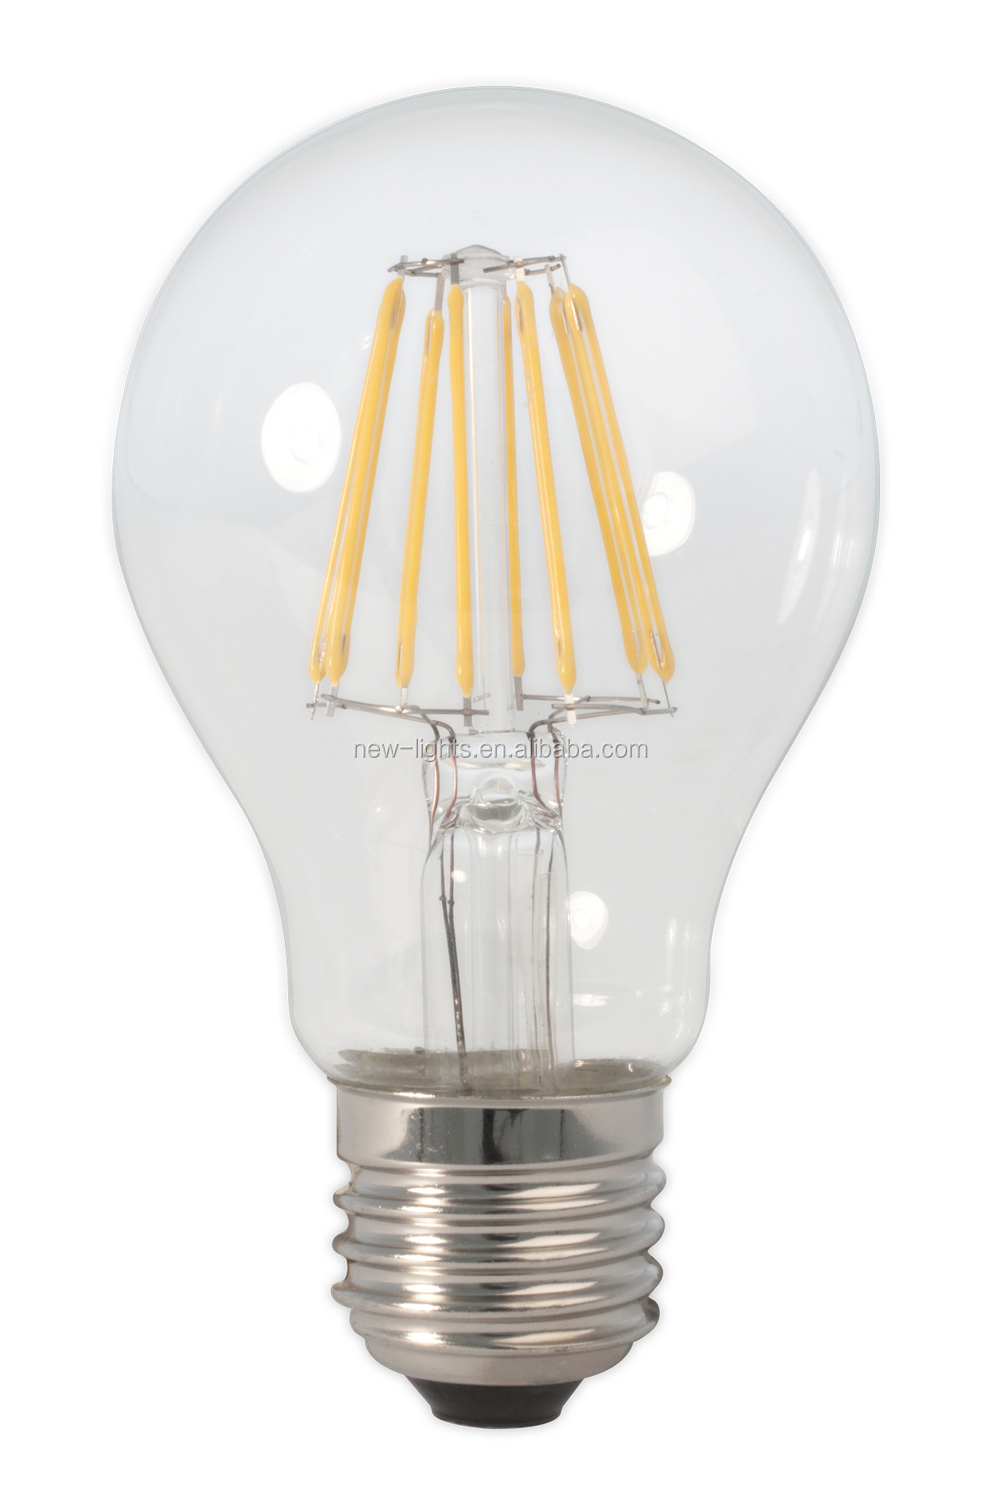 New Generation Of Light Bulb Led Filament Bulb Buy Bulb Led Filament Light Bulb New Generation